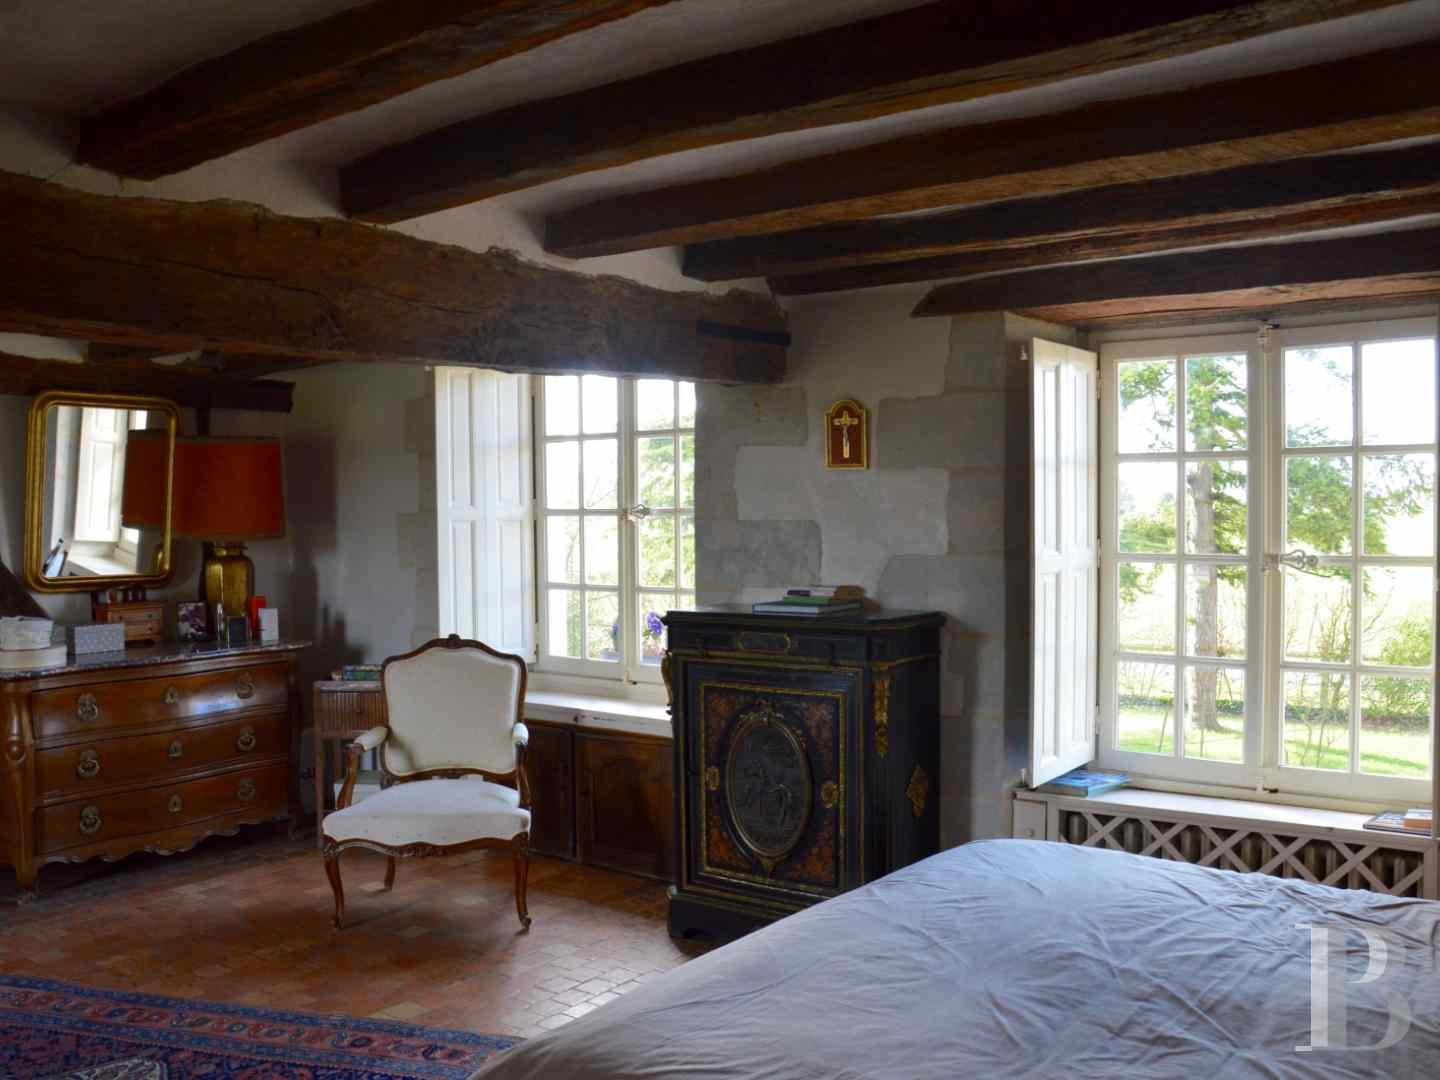 France mansions for sale pays de loire manors for - 7 zoom